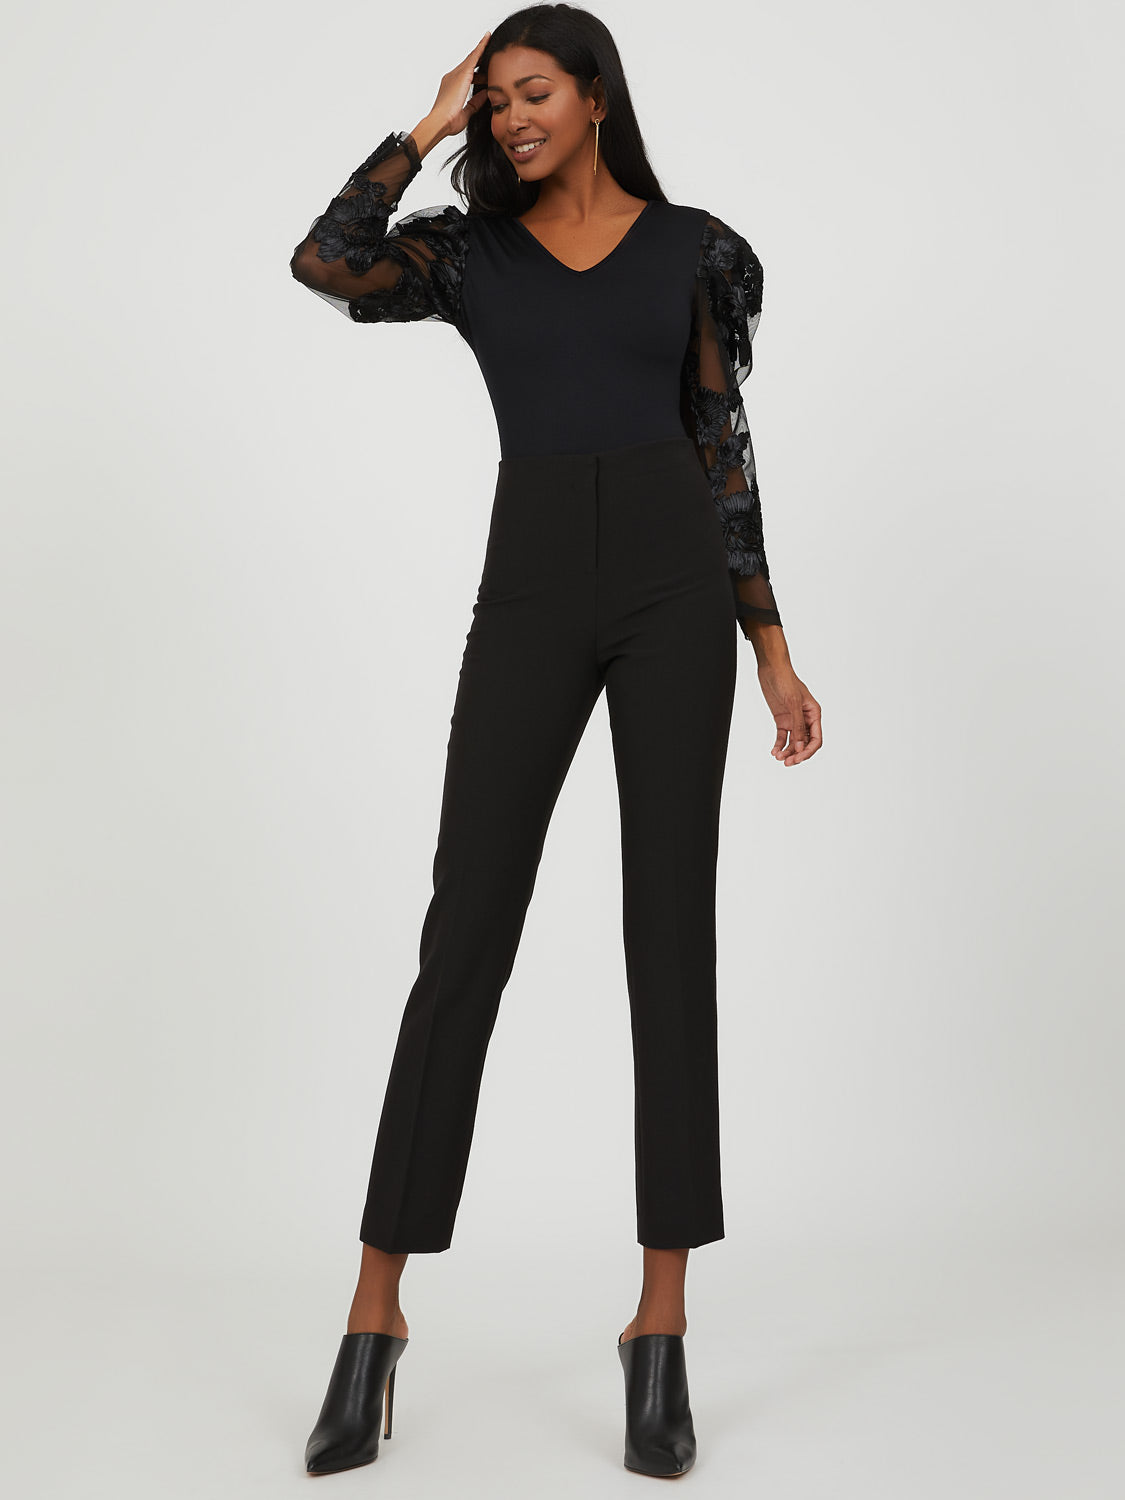 Embroidered Mesh Puff Sleeve Bodysuit